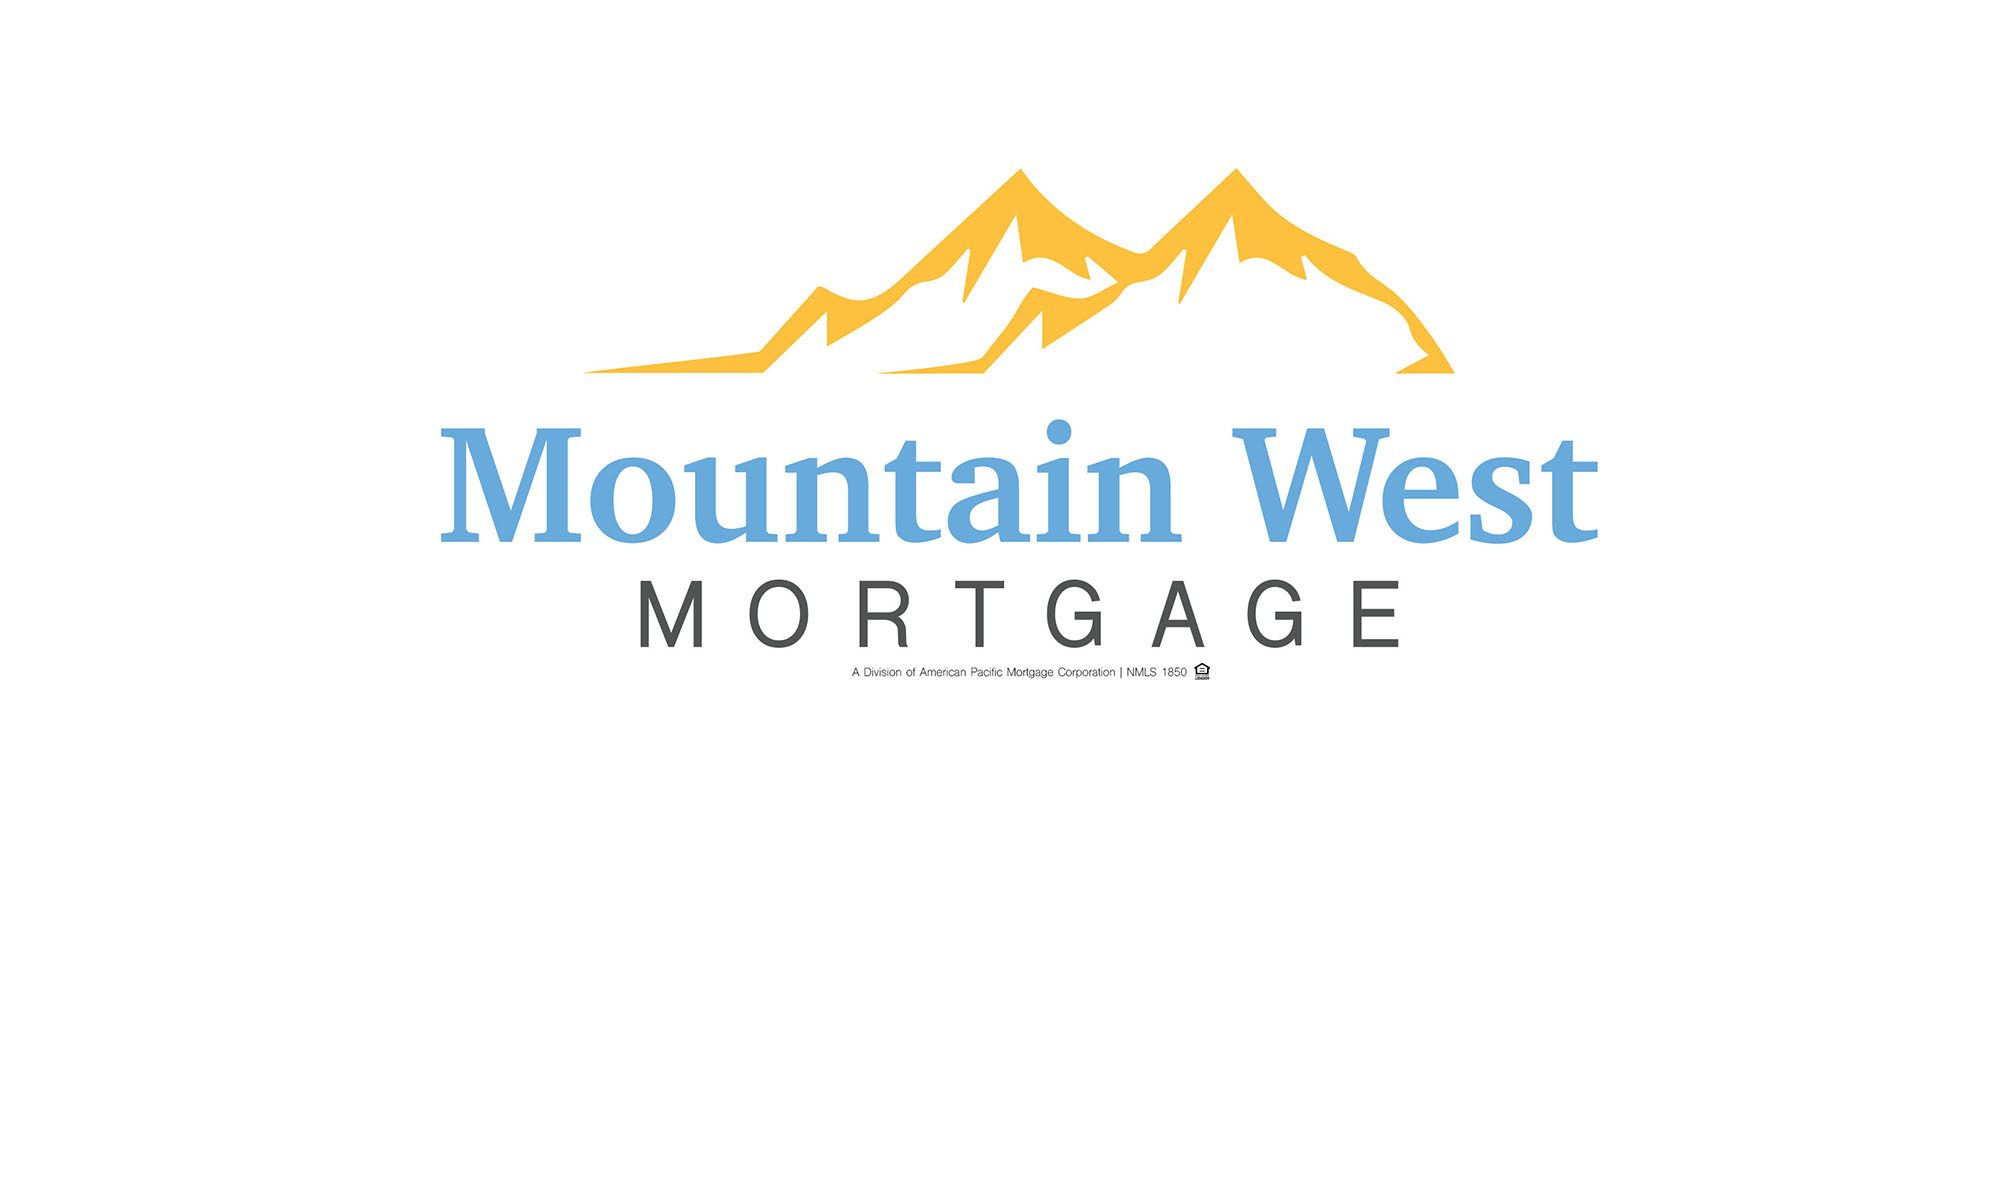 Mountain West Mortgage